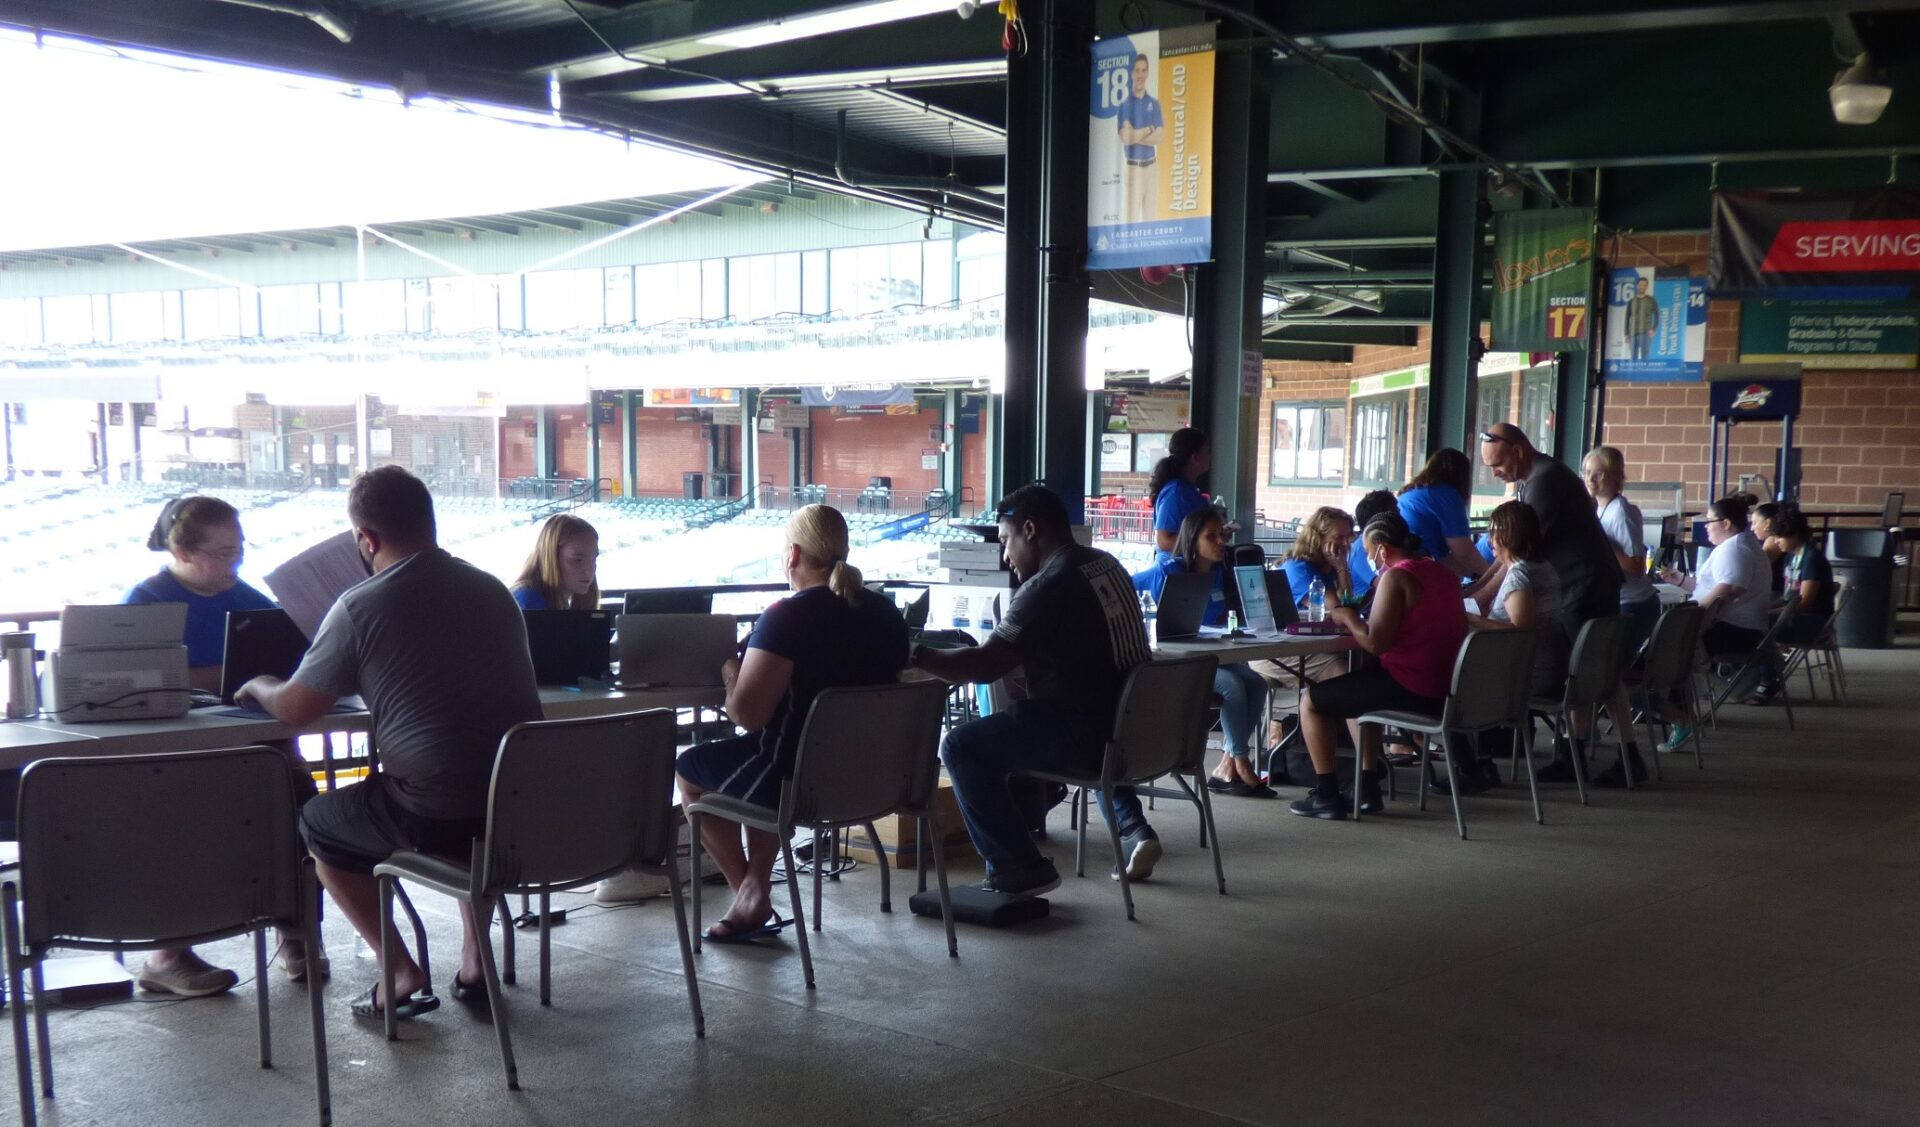 Staff from the Lancaster County Redevelopment Authority and local nonprofits assist clients with Emergency Rental Assistance Program applications at the Rental & Utility Assistance Community Days event at Clipper Magazine Stadium in Lancaster on Friday, July 23, 2021. (Photo: Tim Stuhldreher)